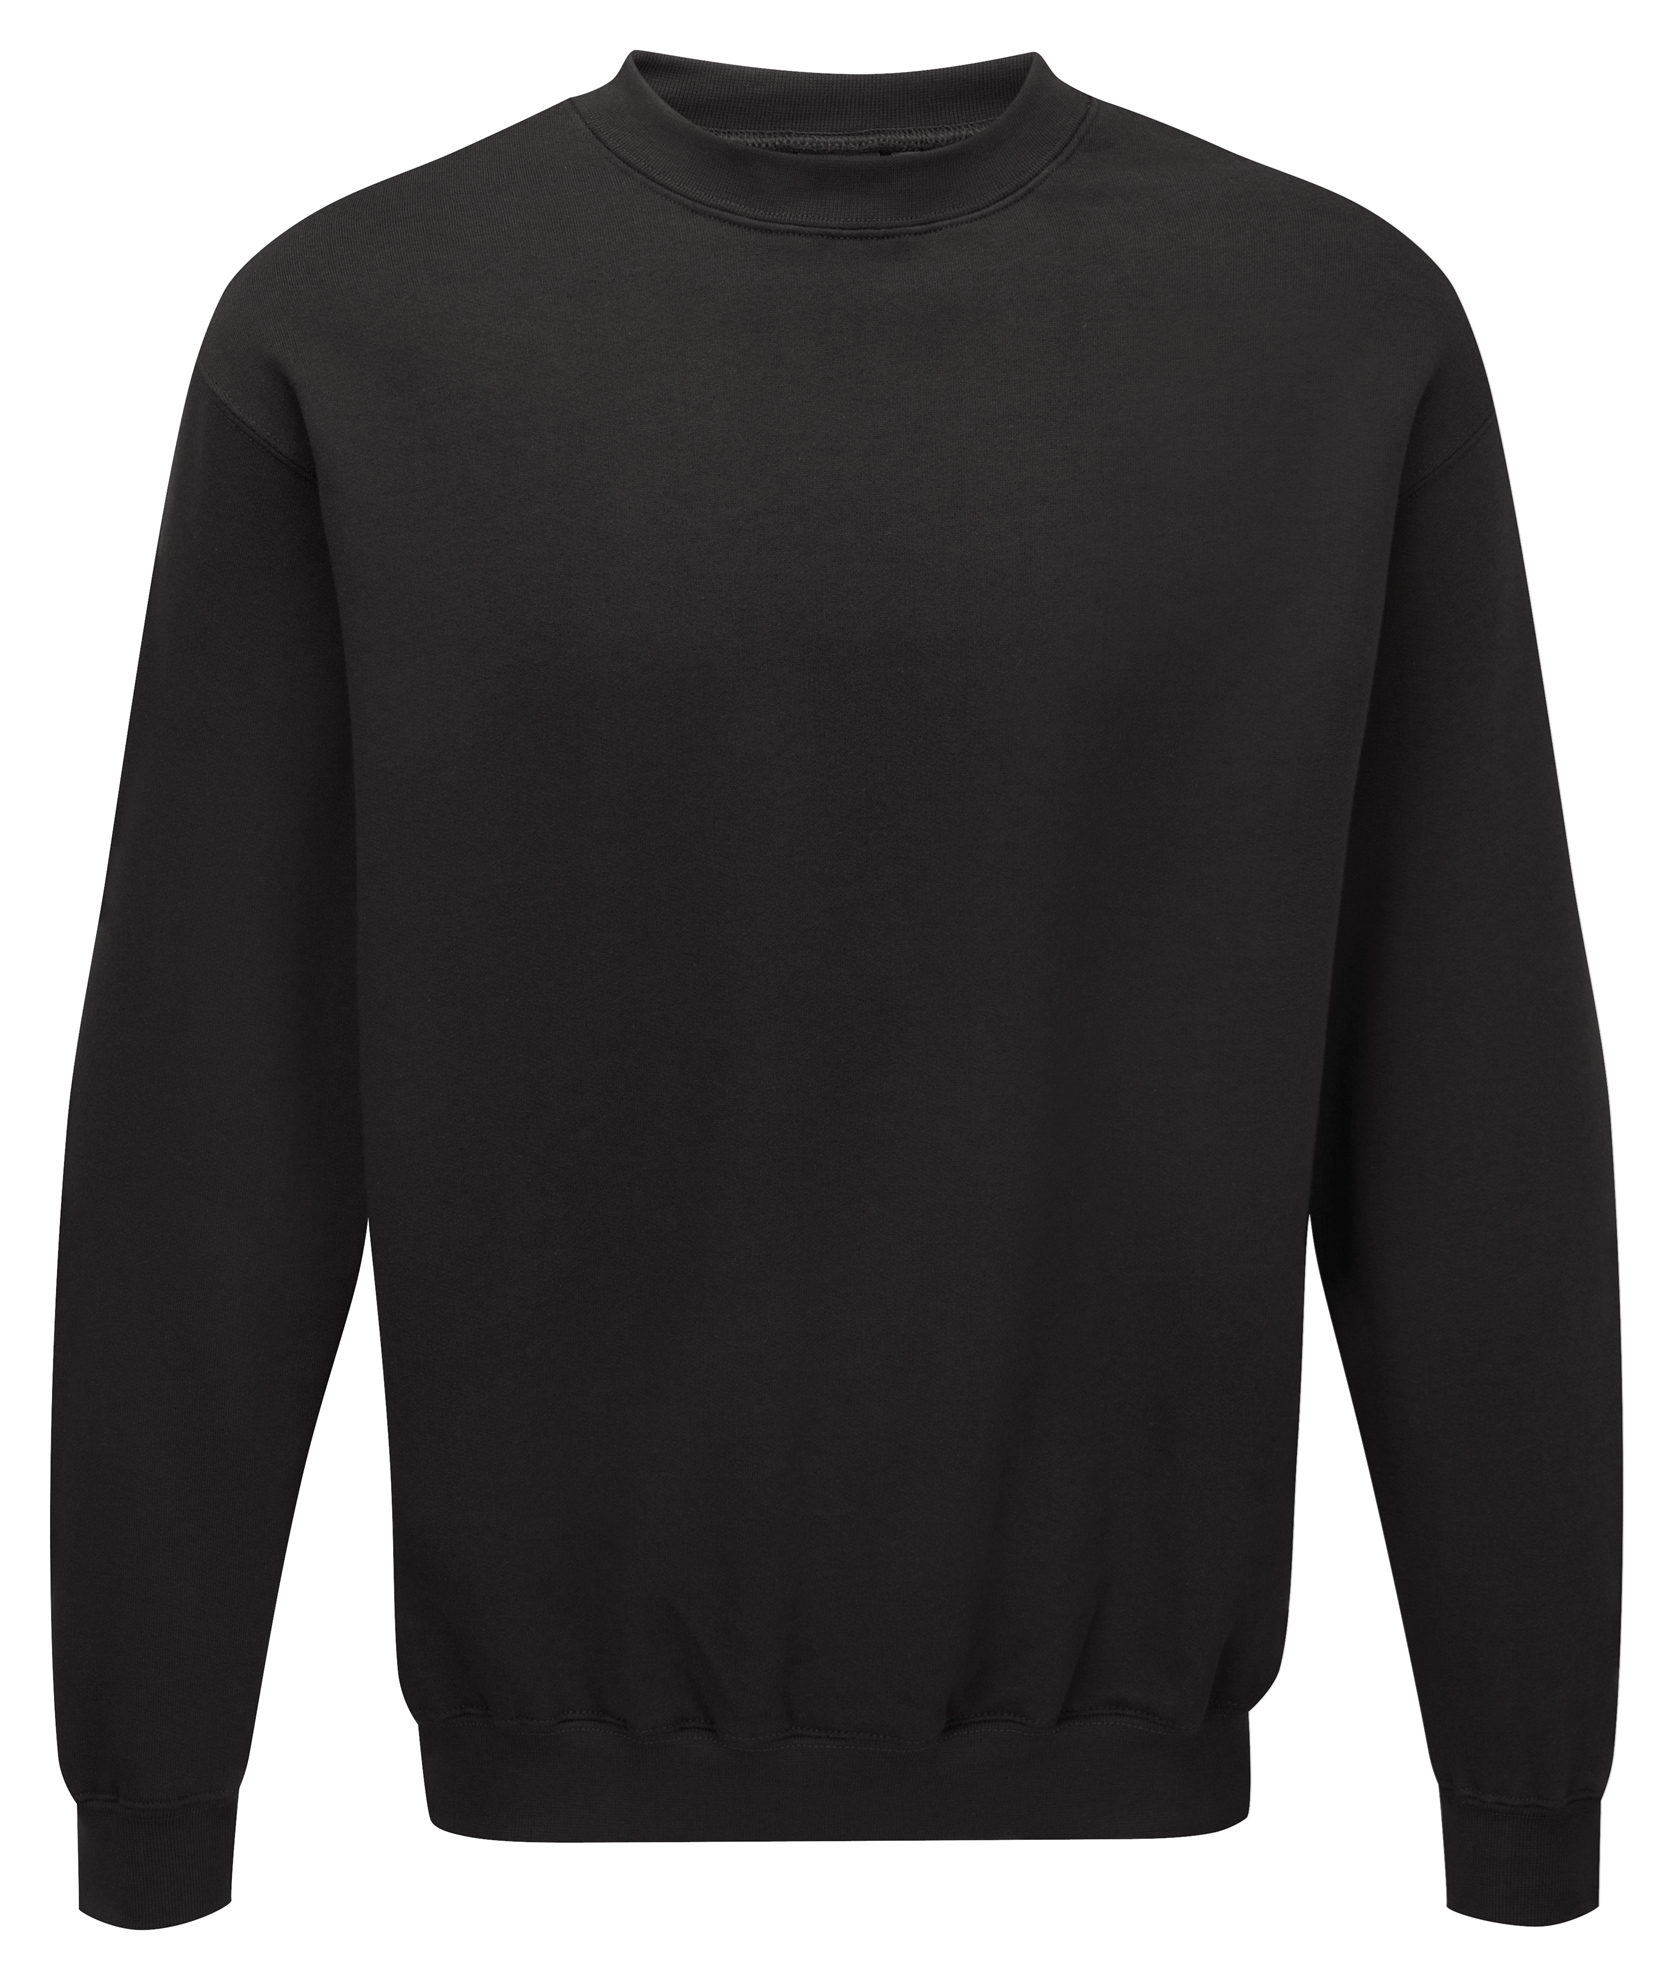 Picture of Sweatshirt - Black